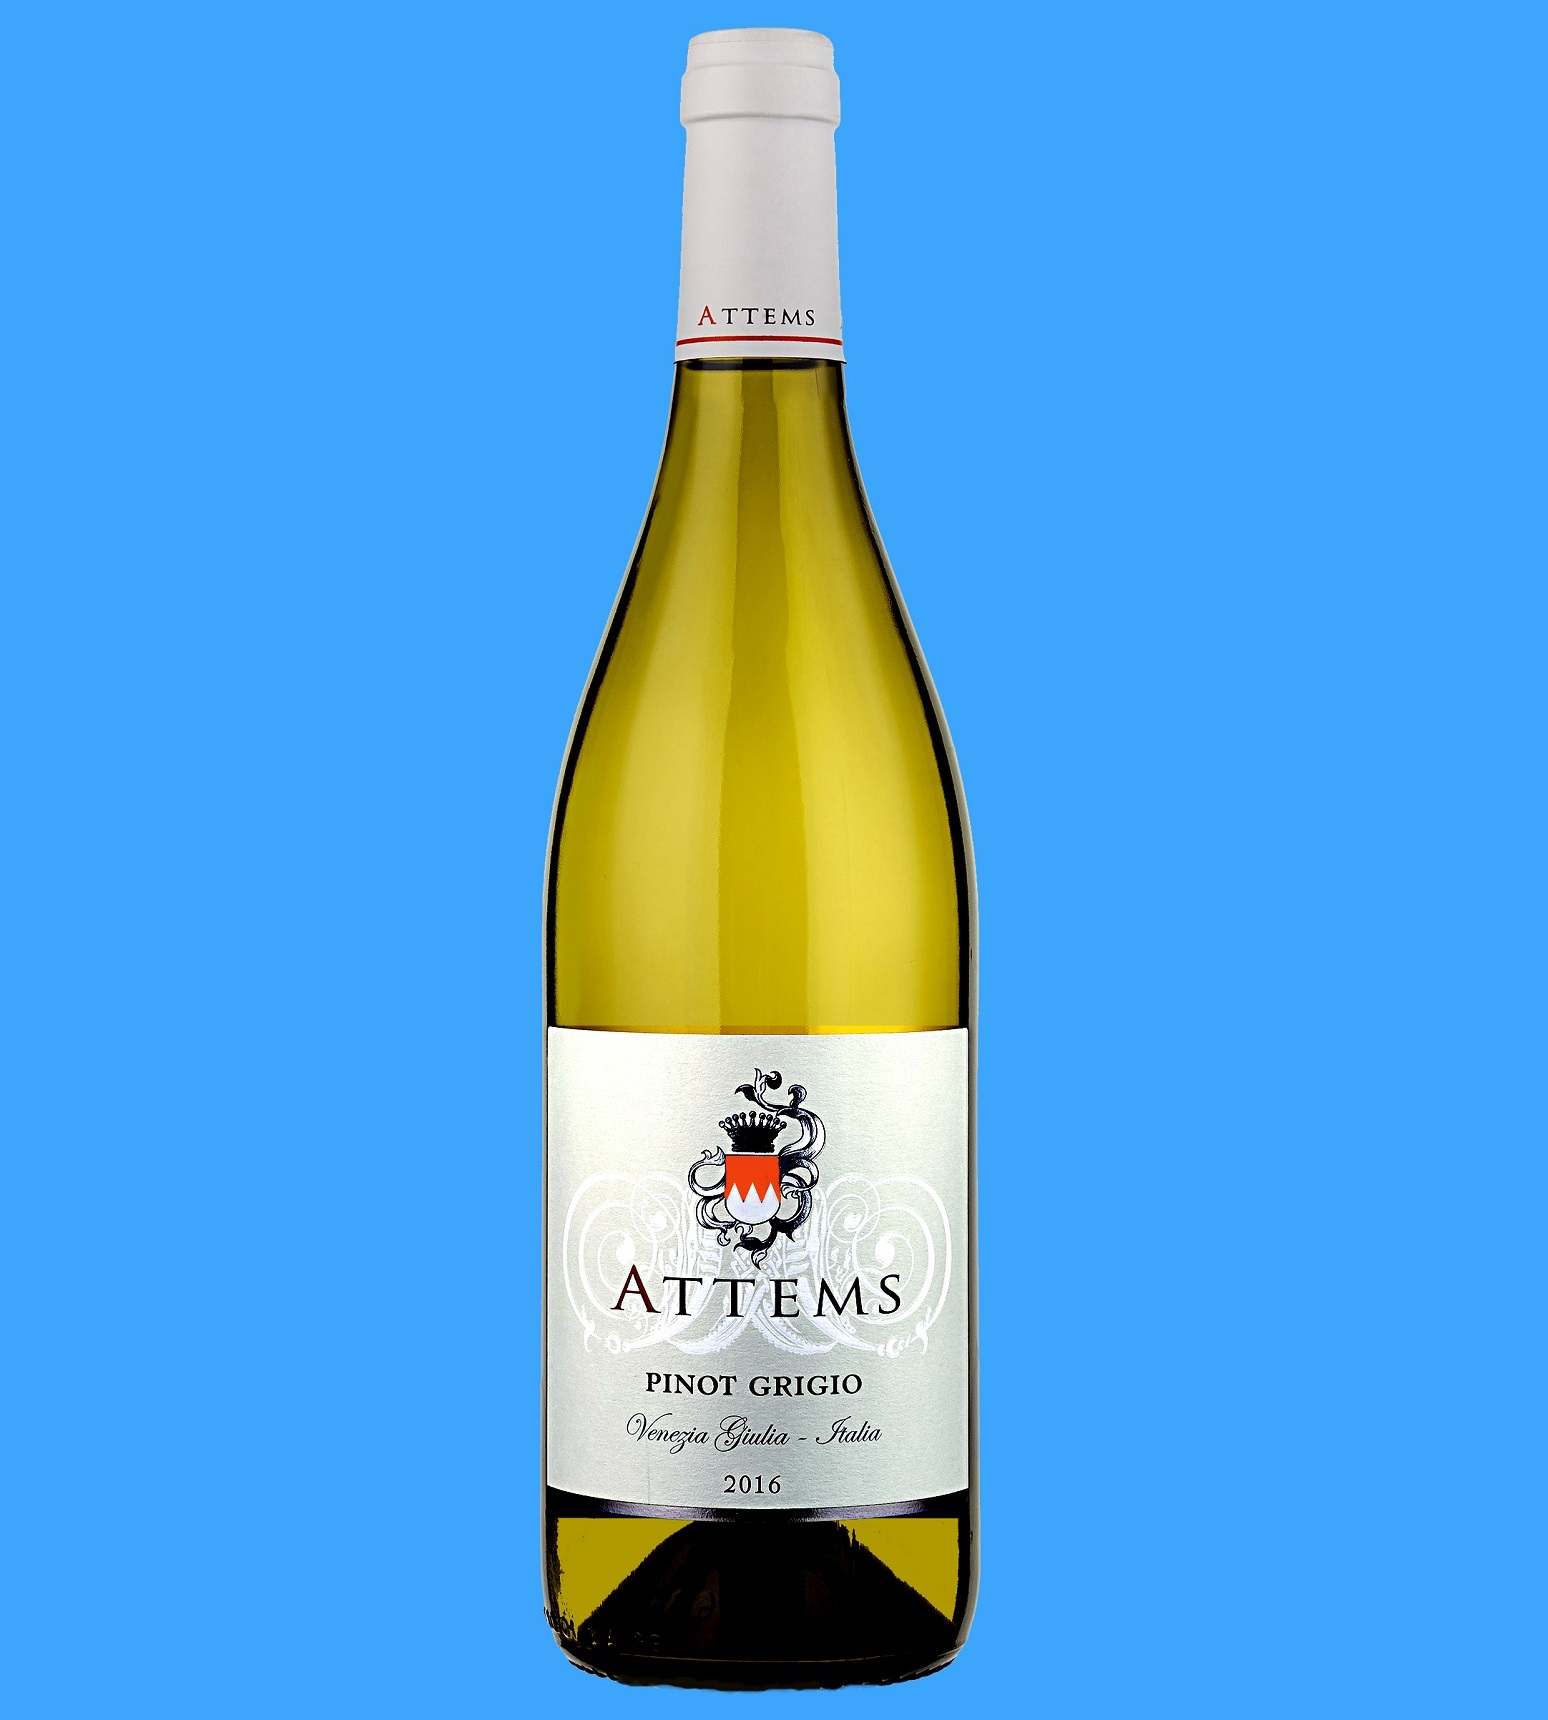 roger attems pinot grigio bouteille